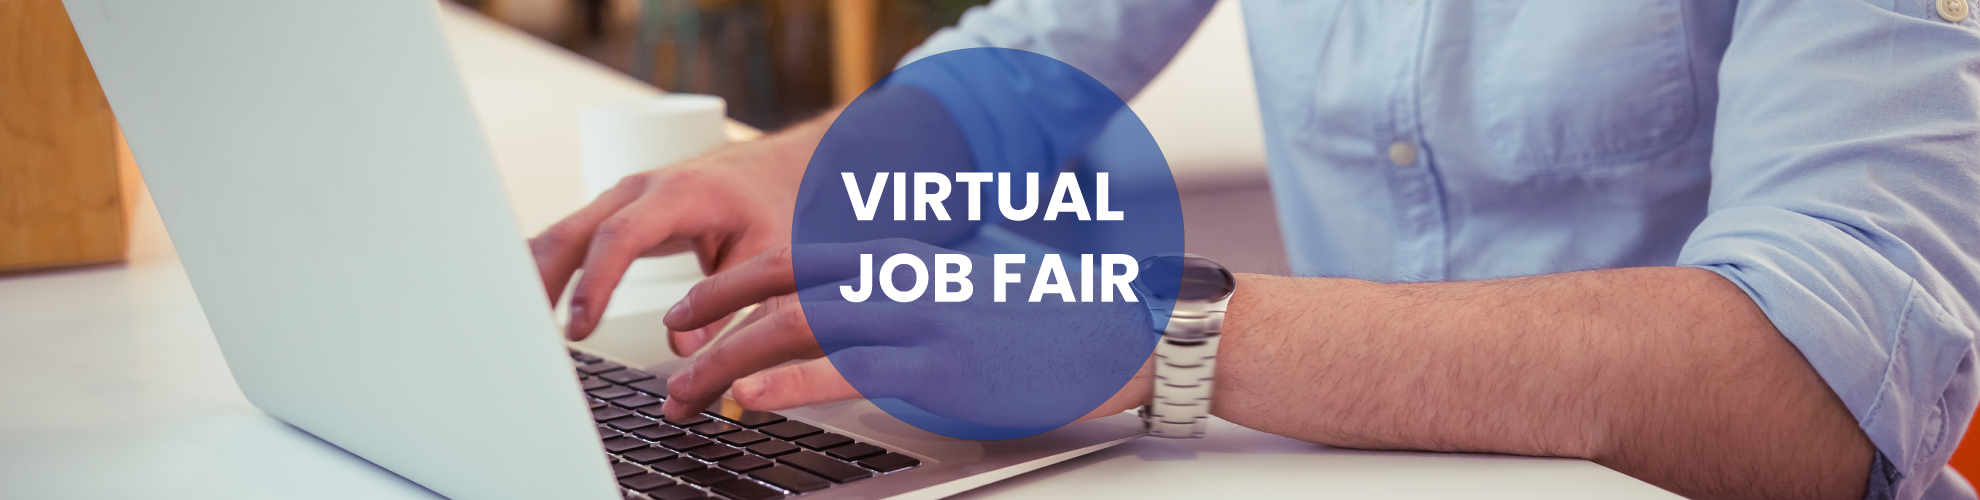 VIRTUAL-JOB-FAIR-2020